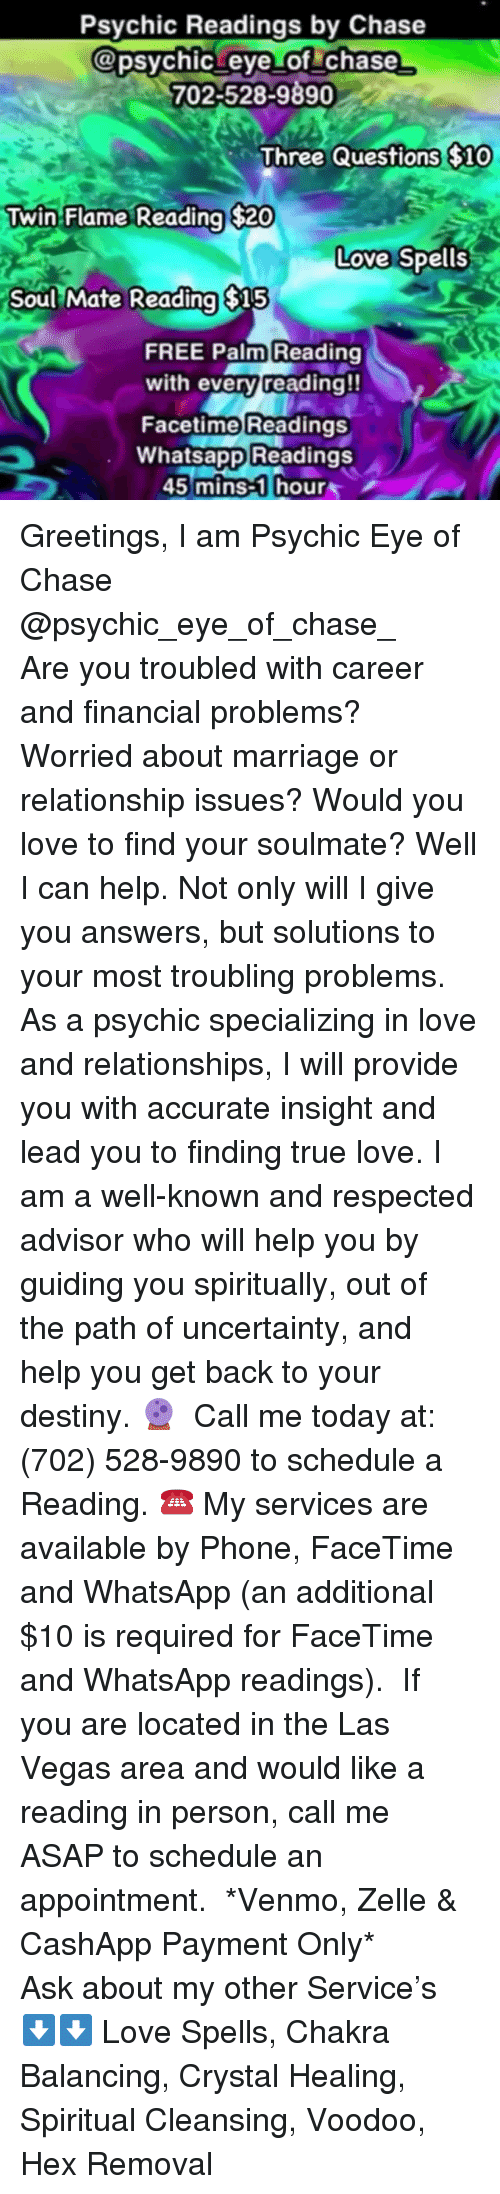 Destiny, Facetime, and Love: Psychic Readings by Chase  apsychic eye of chase  702-528-9890  $10  Three Questions SlO  Twin  Flame Reading $20  Love Spells  Soul Mate Reading $15  FREE Palm Reading  with every reading!!  Facetime Readings  Whatsapp Readings  45 mins-1 hour Greetings, I am Psychic Eye of Chase @psychic_eye_of_chase_   Are you troubled with career and financial problems? Worried about marriage or relationship issues? Would you love to find your soulmate? Well I can help. Not only will I give you answers, but solutions to your most troubling problems. As a psychic specializing in love and relationships, I will provide you with accurate insight and lead you to finding true love. I am a well-known and respected advisor who will help you by guiding you spiritually, out of the path of uncertainty, and help you get back to your destiny.🔮  Call me today at: (702) 528-9890 to schedule a Reading. ☎️ My services are available by Phone, FaceTime and WhatsApp (an additional $10 is required for FaceTime and WhatsApp readings).  If you are located in the Las Vegas area and would like a reading in person, call me ASAP to schedule an appointment.  *Venmo, Zelle & CashApp Payment Only*  Ask about my other Service's ⬇️⬇️ Love Spells, Chakra Balancing, Crystal Healing, Spiritual Cleansing, Voodoo, Hex Removal